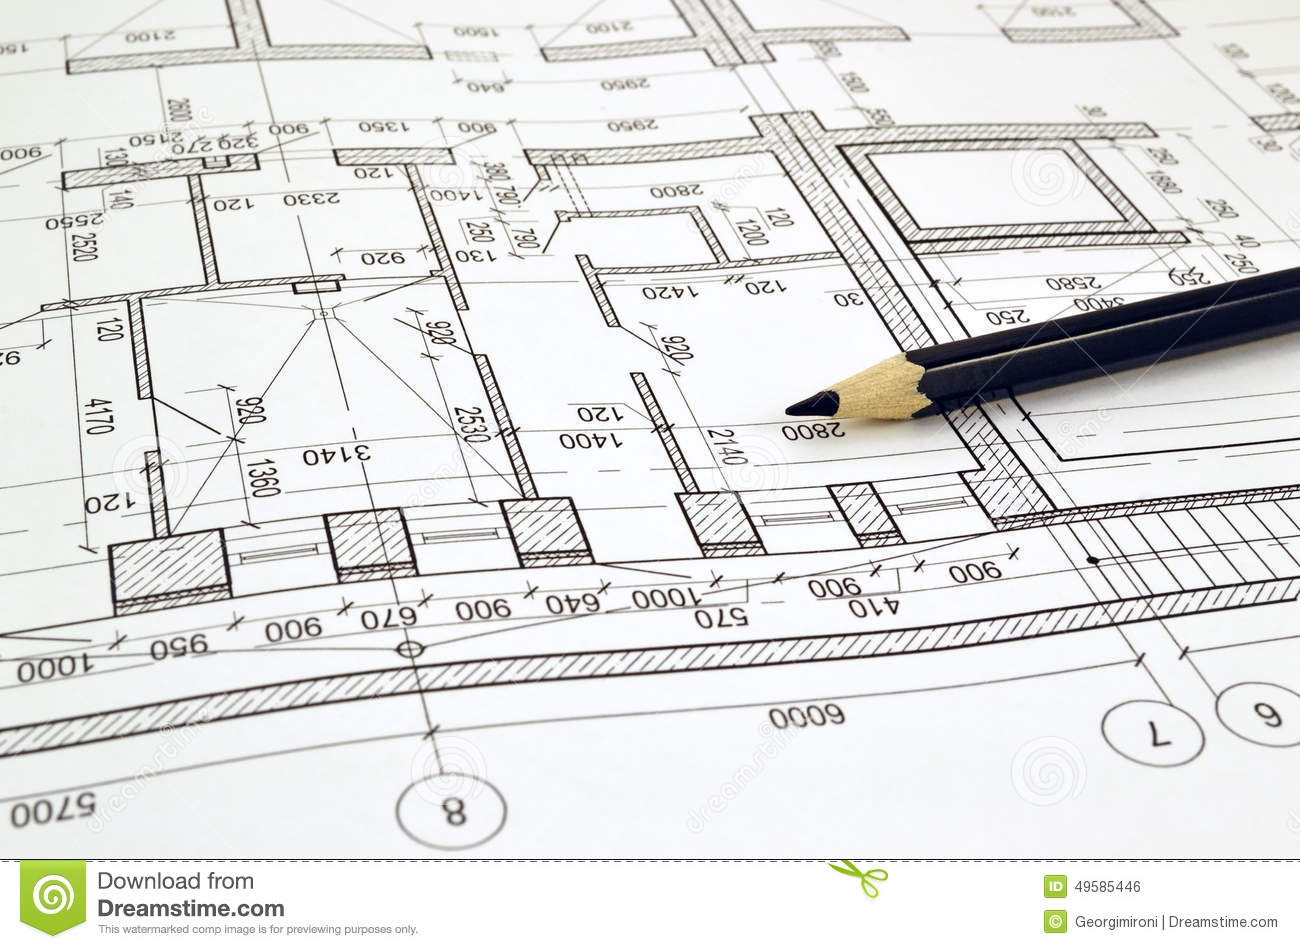 Drawing A Floor Plan Of The Building Stock Photo - Image ...